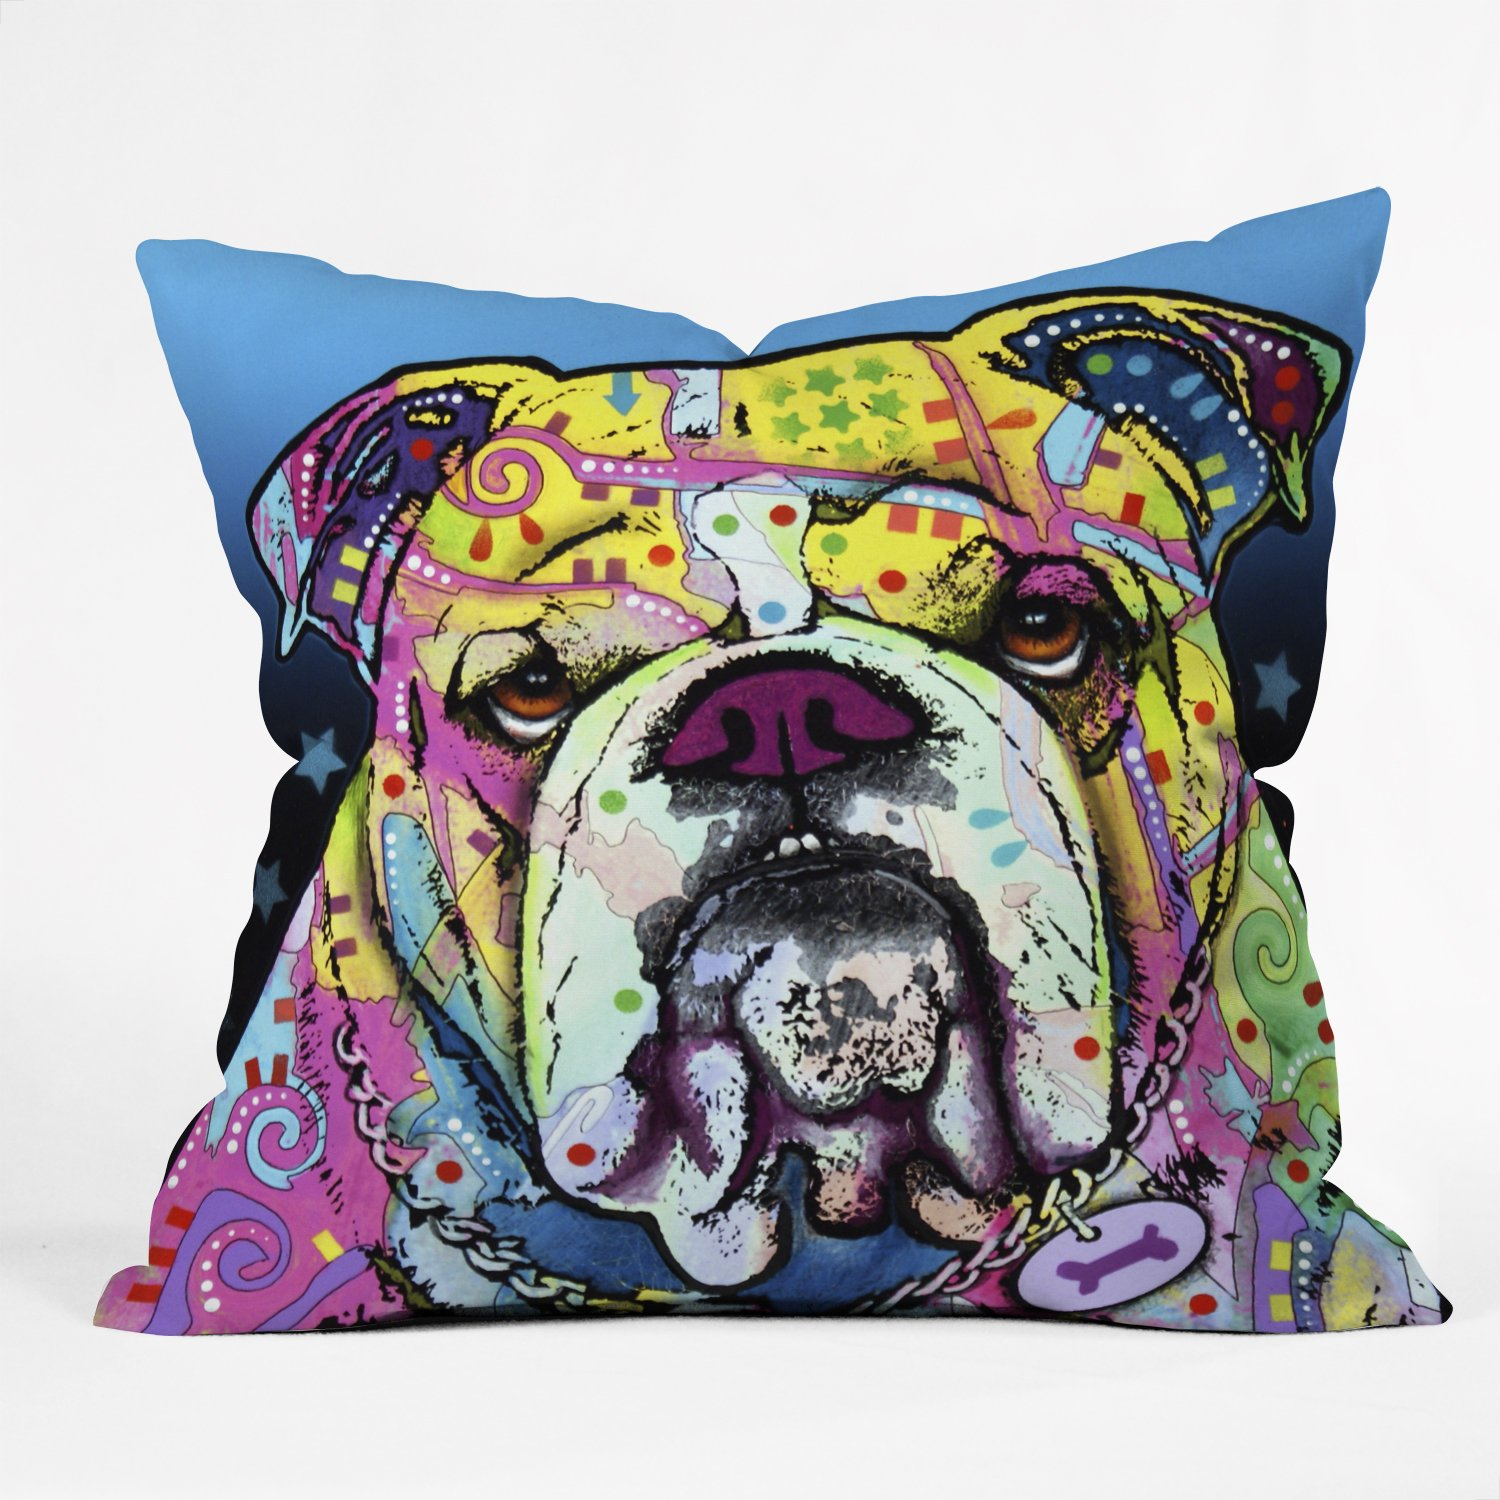 unique pillows - funky cool unique modern colorful throw pillows skarro be fun